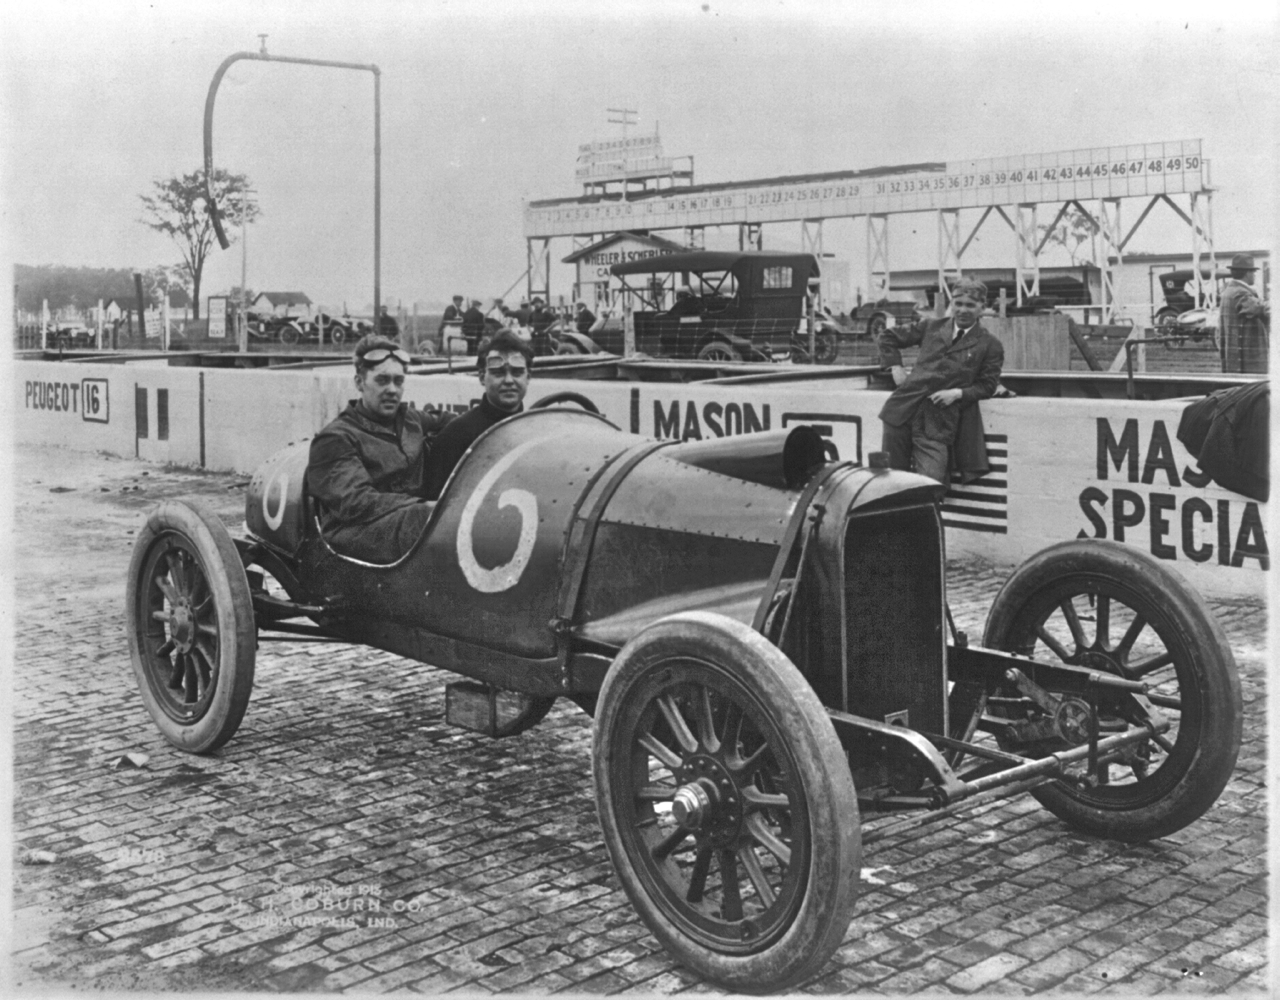 A Mason Racing Car | The Old Motor